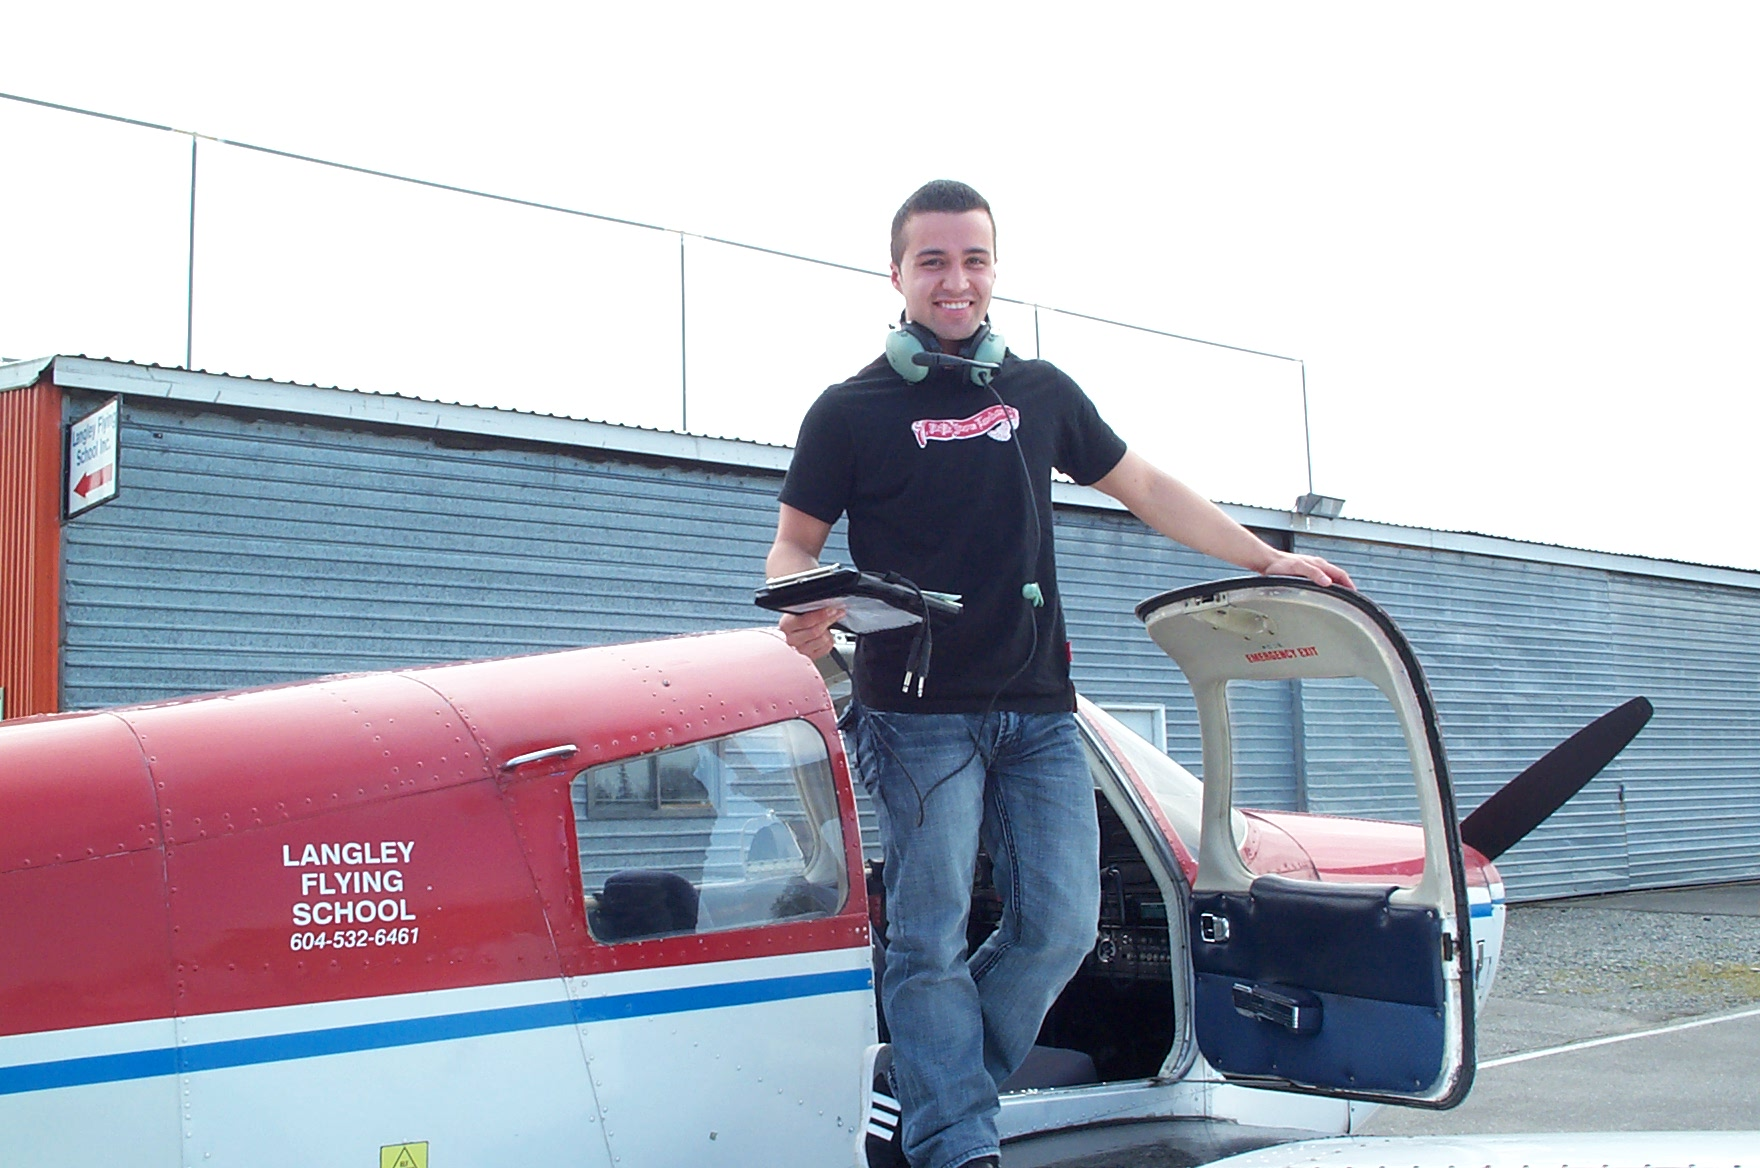 Andres Angulo on the wing of Cherokee FKKF after completing his First Solo Flight on April 14, 2010. Langley Flying School.